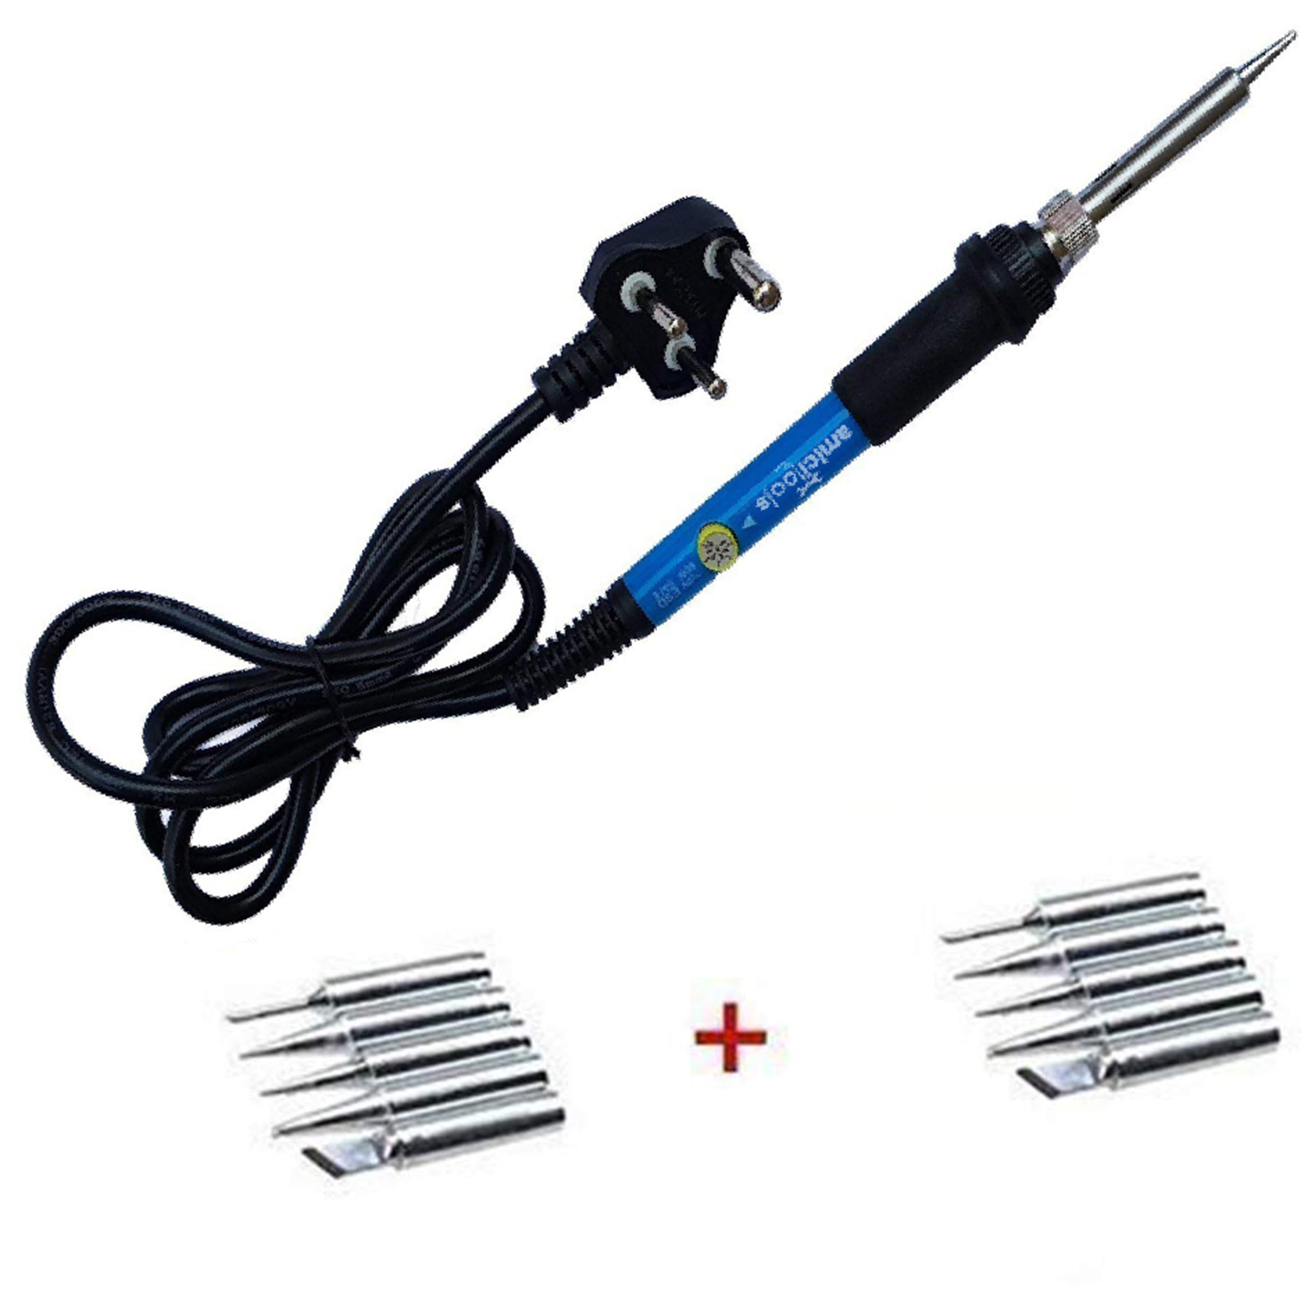 AmiciTools 60W Soldering Iron with Adjustable Temperatures